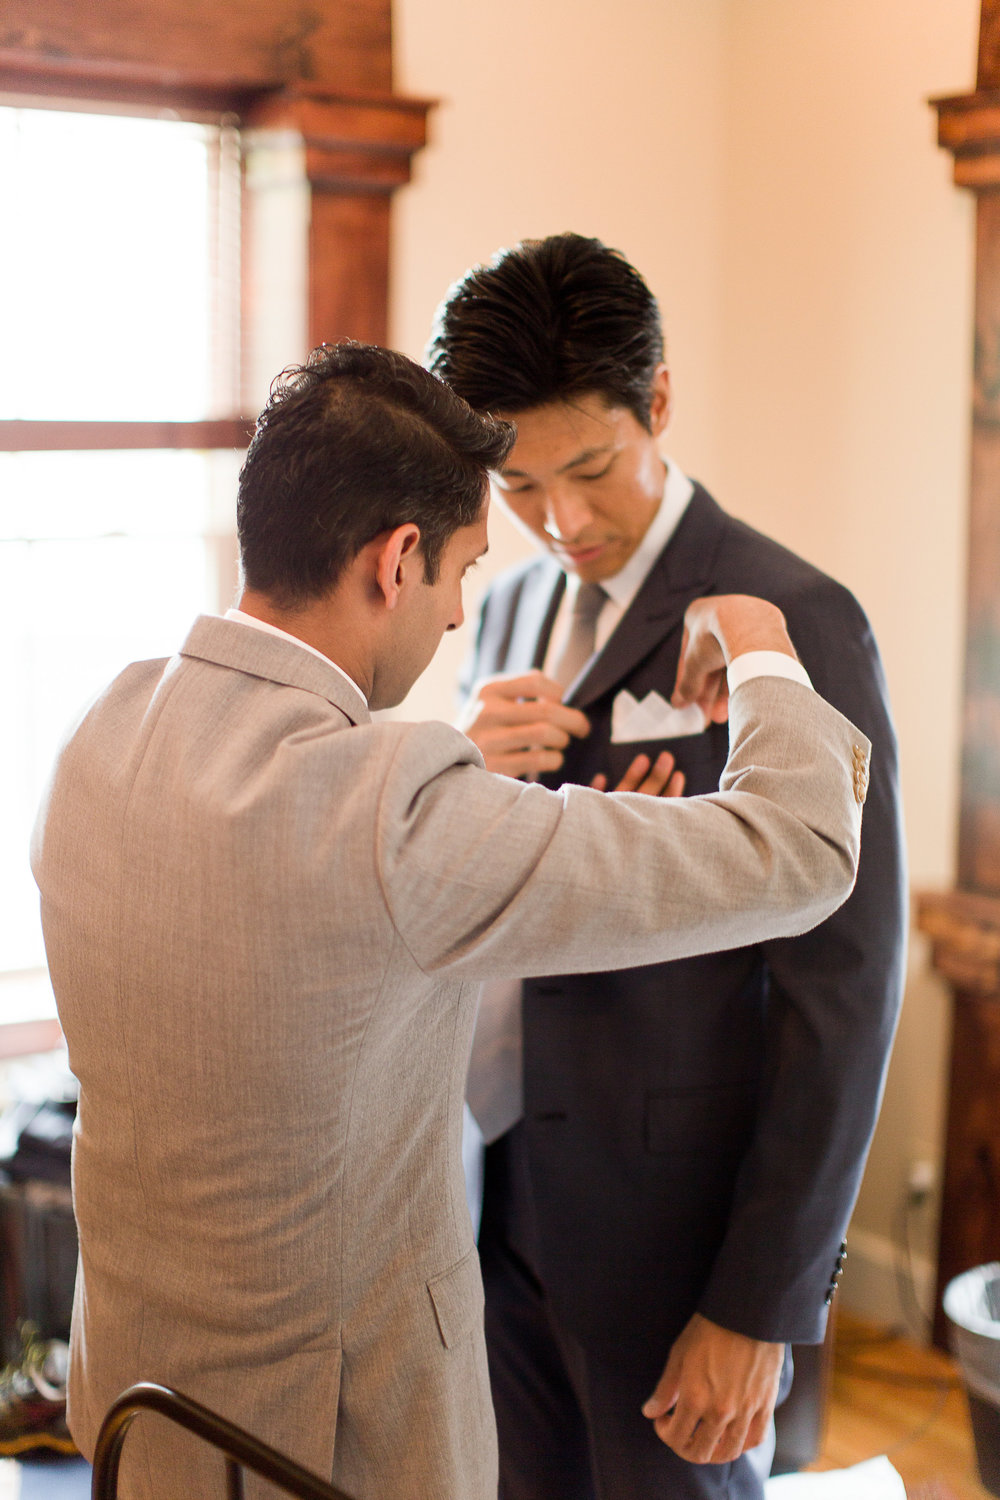 POCKET SQUARE CONSULTATION